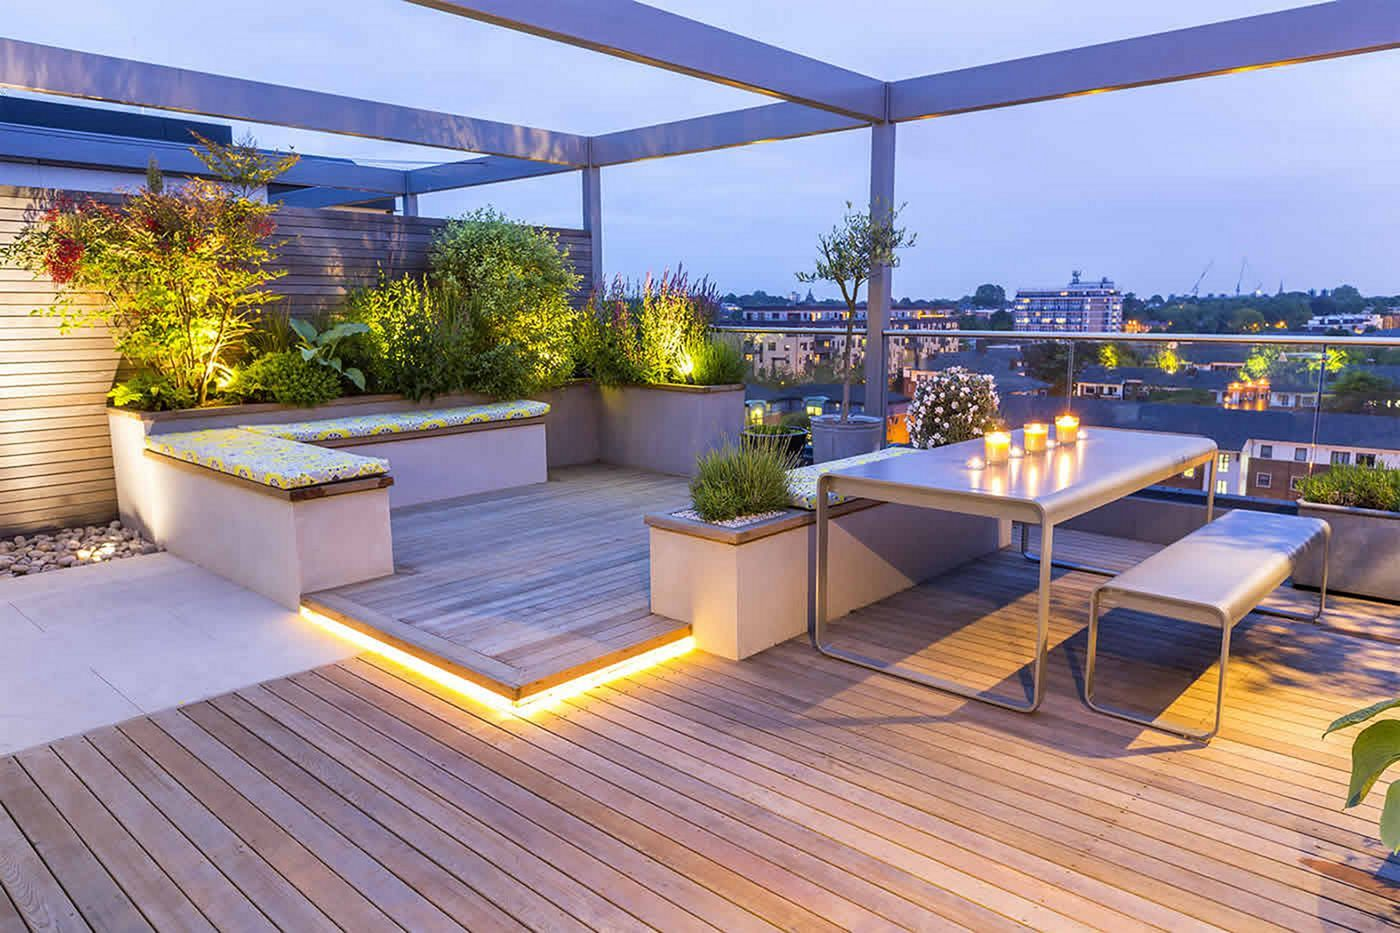 Outstanding 25 Awesome Outdoor Patio Decorating Ideas You Need To Try Https Decoretoo Com 25 Rooftop Terrace Design Roof Terrace Design Terrace Garden Design